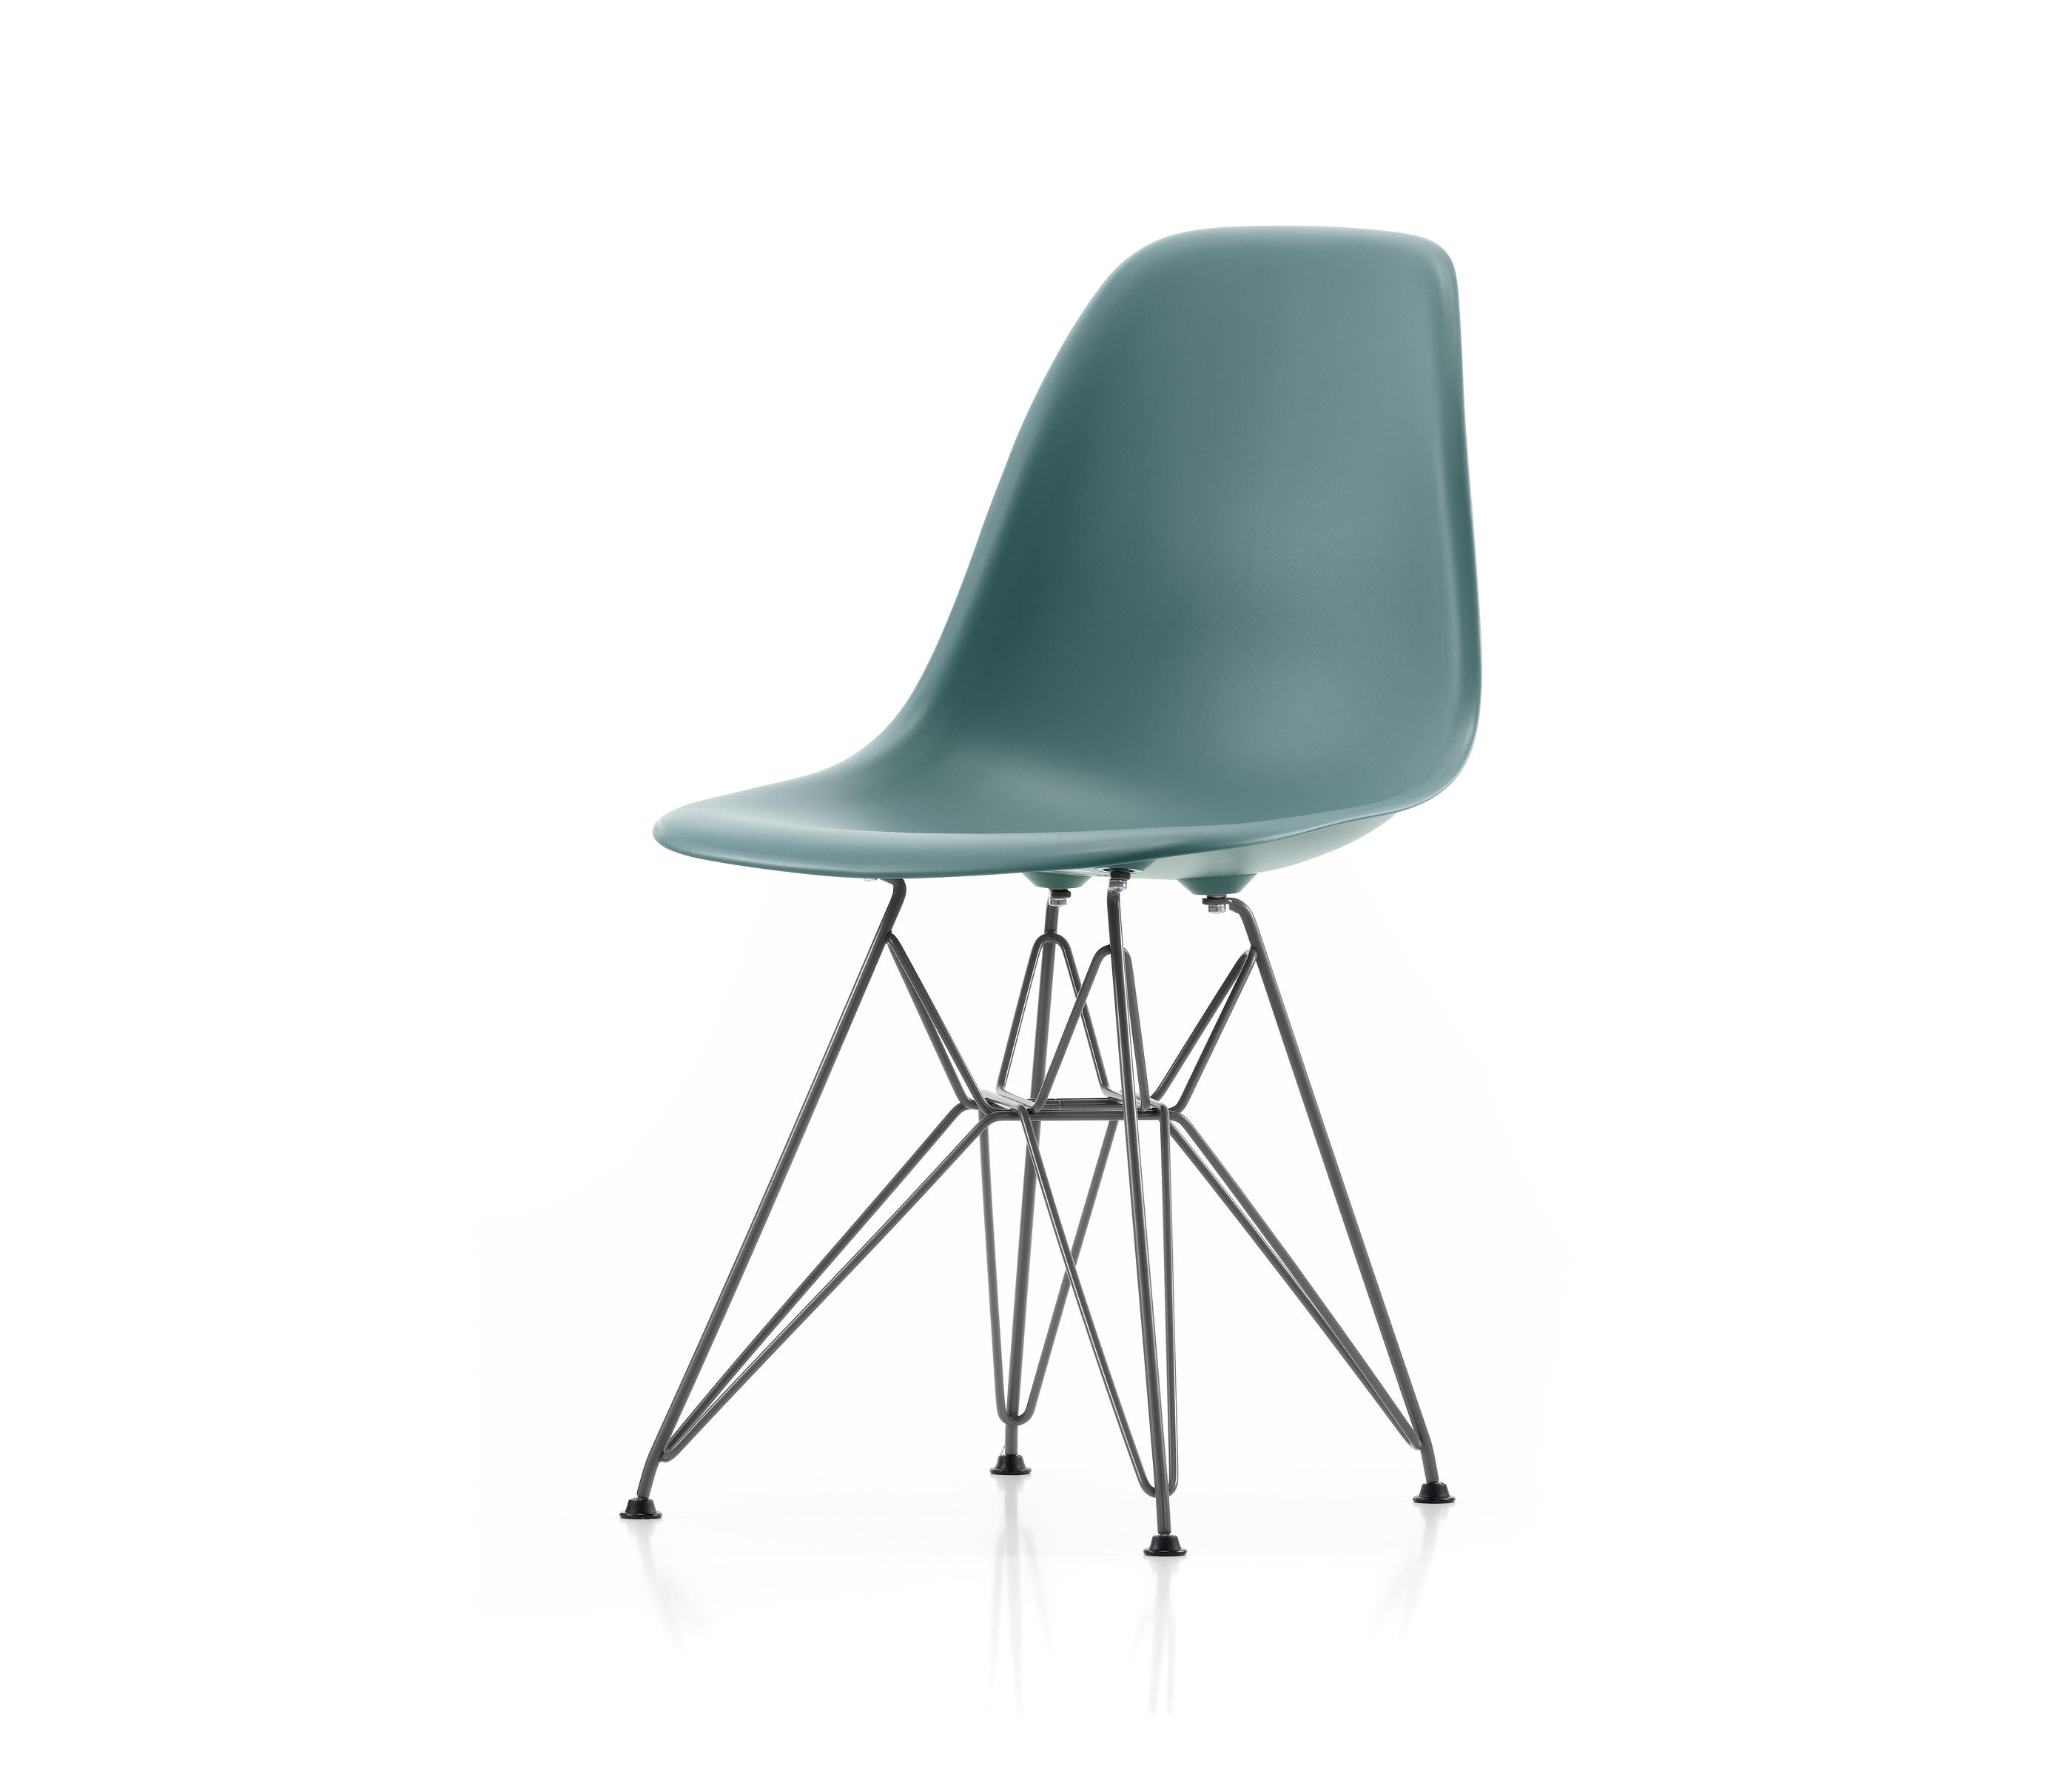 EAMES PLASTIC SIDE CHAIR DSR - Chairs from Vitra | Architonic